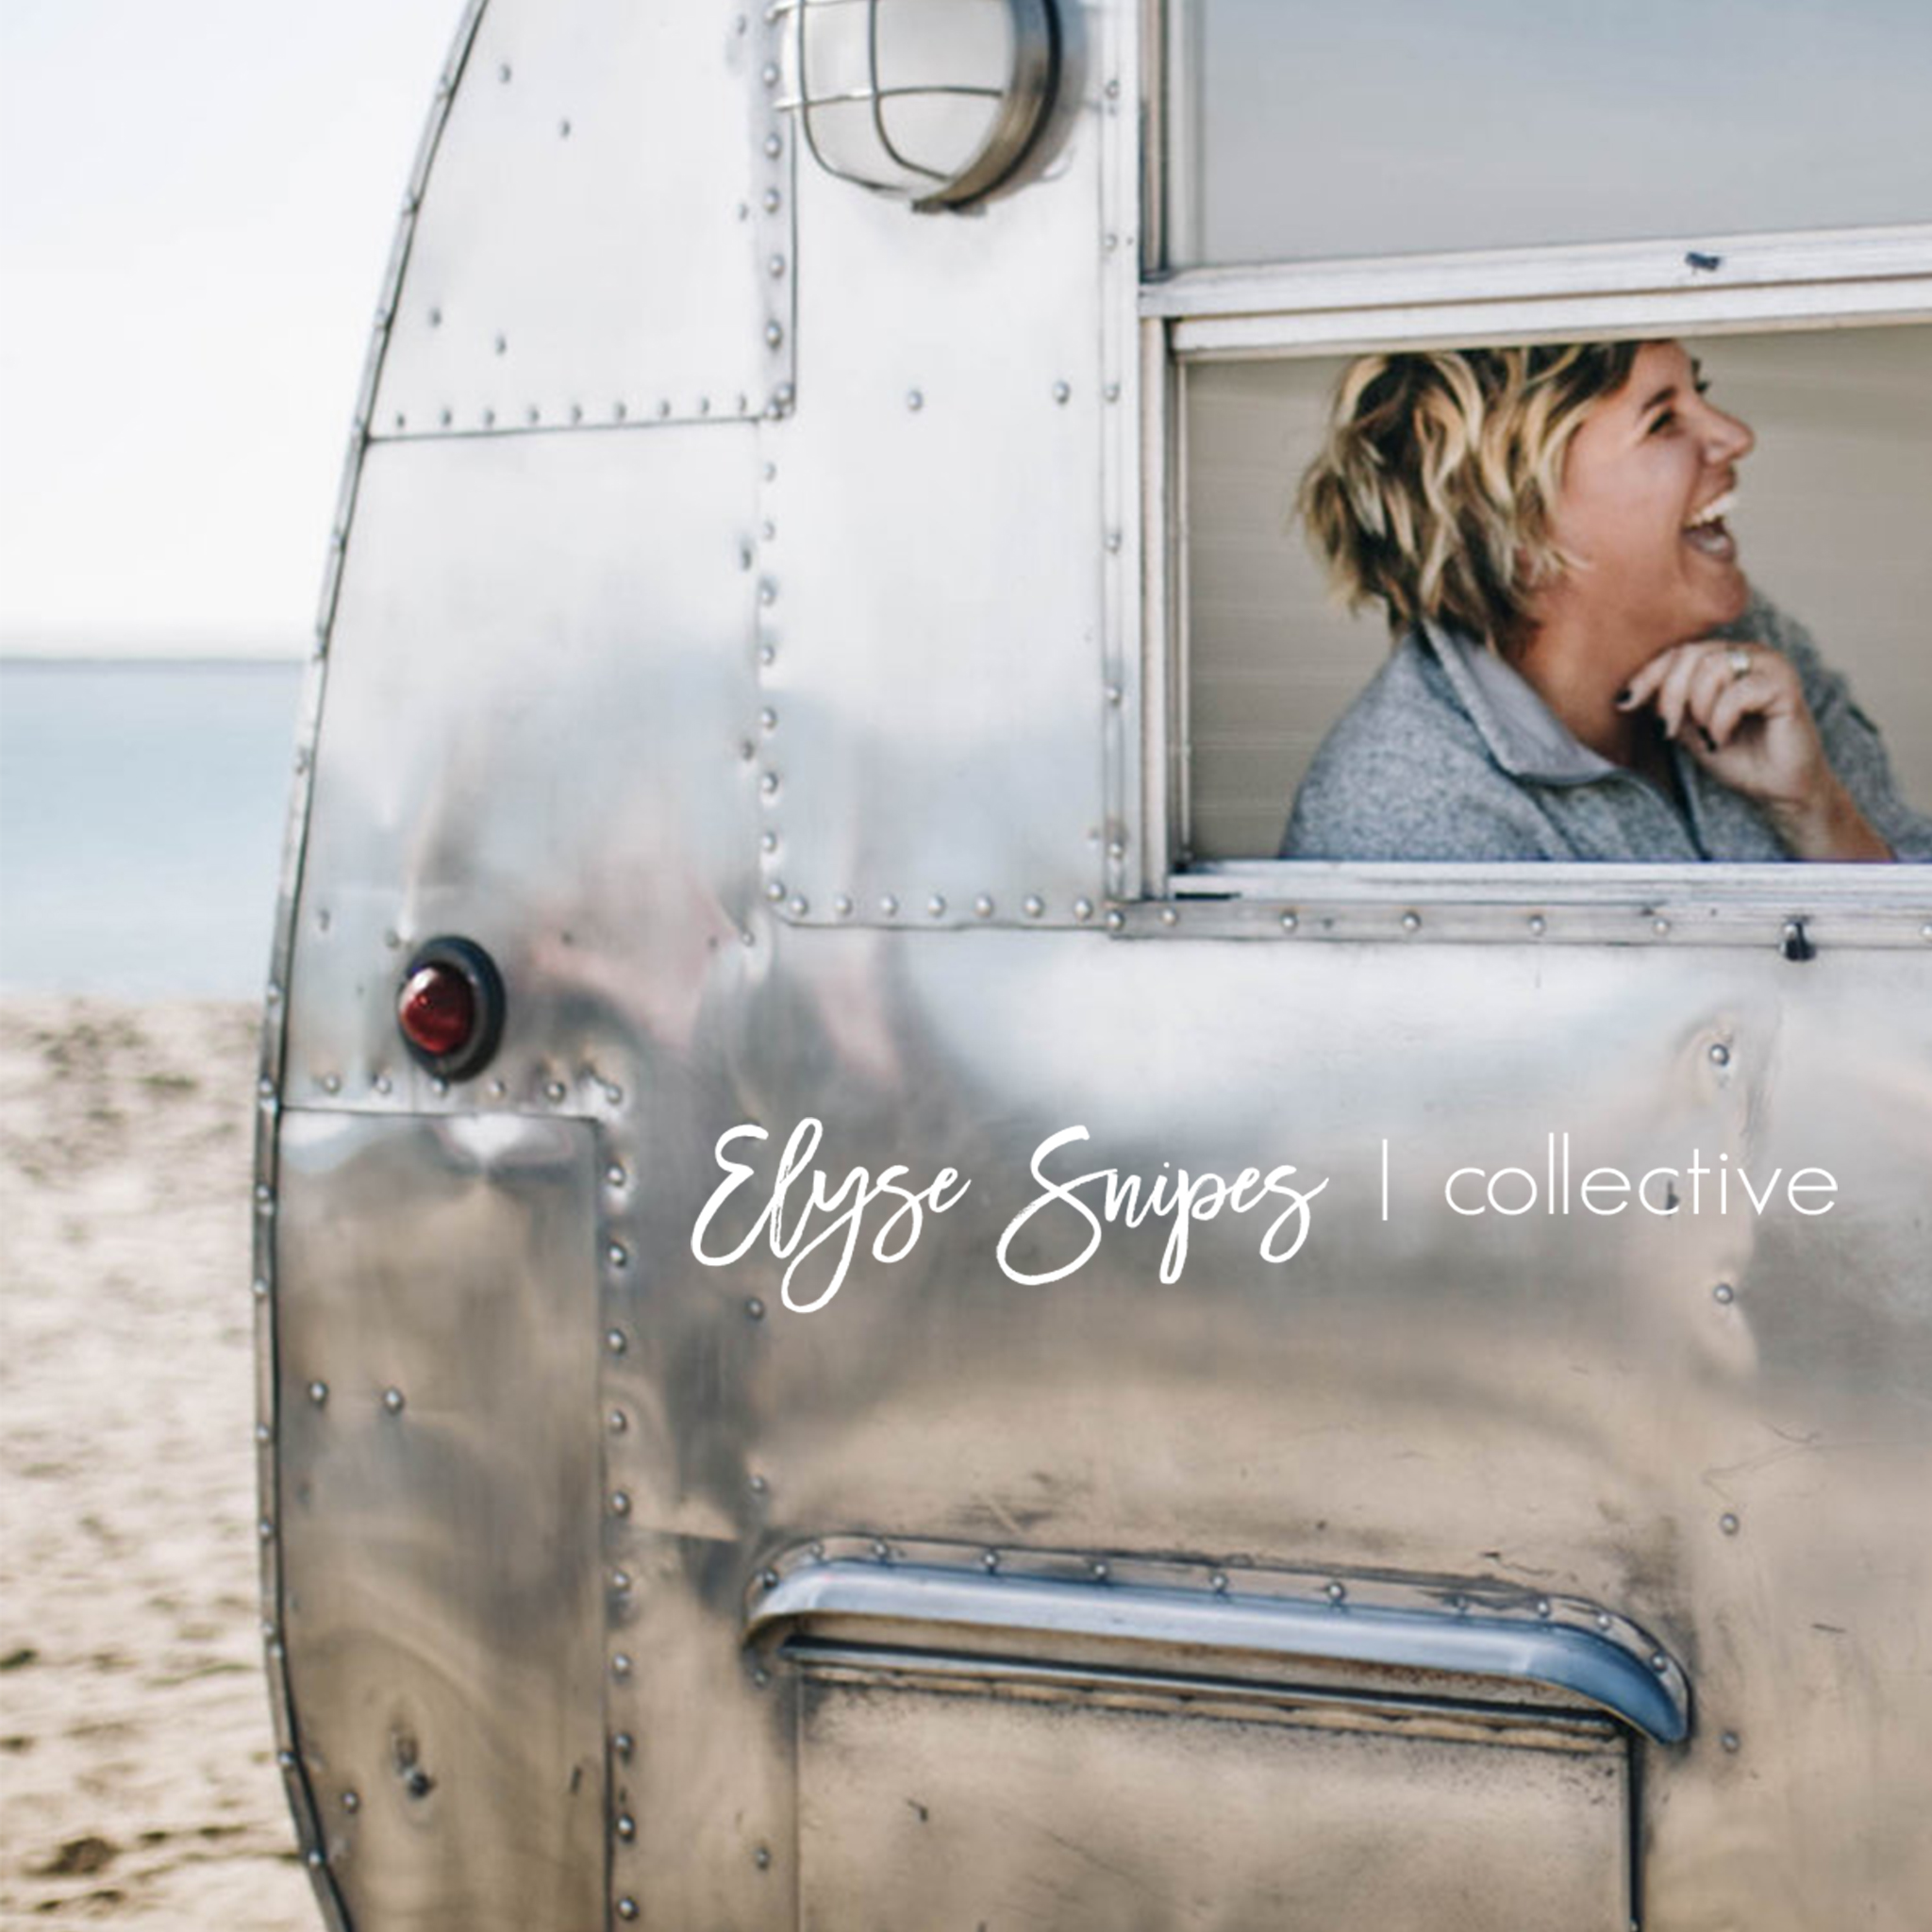 Elyse Snipes | Collective